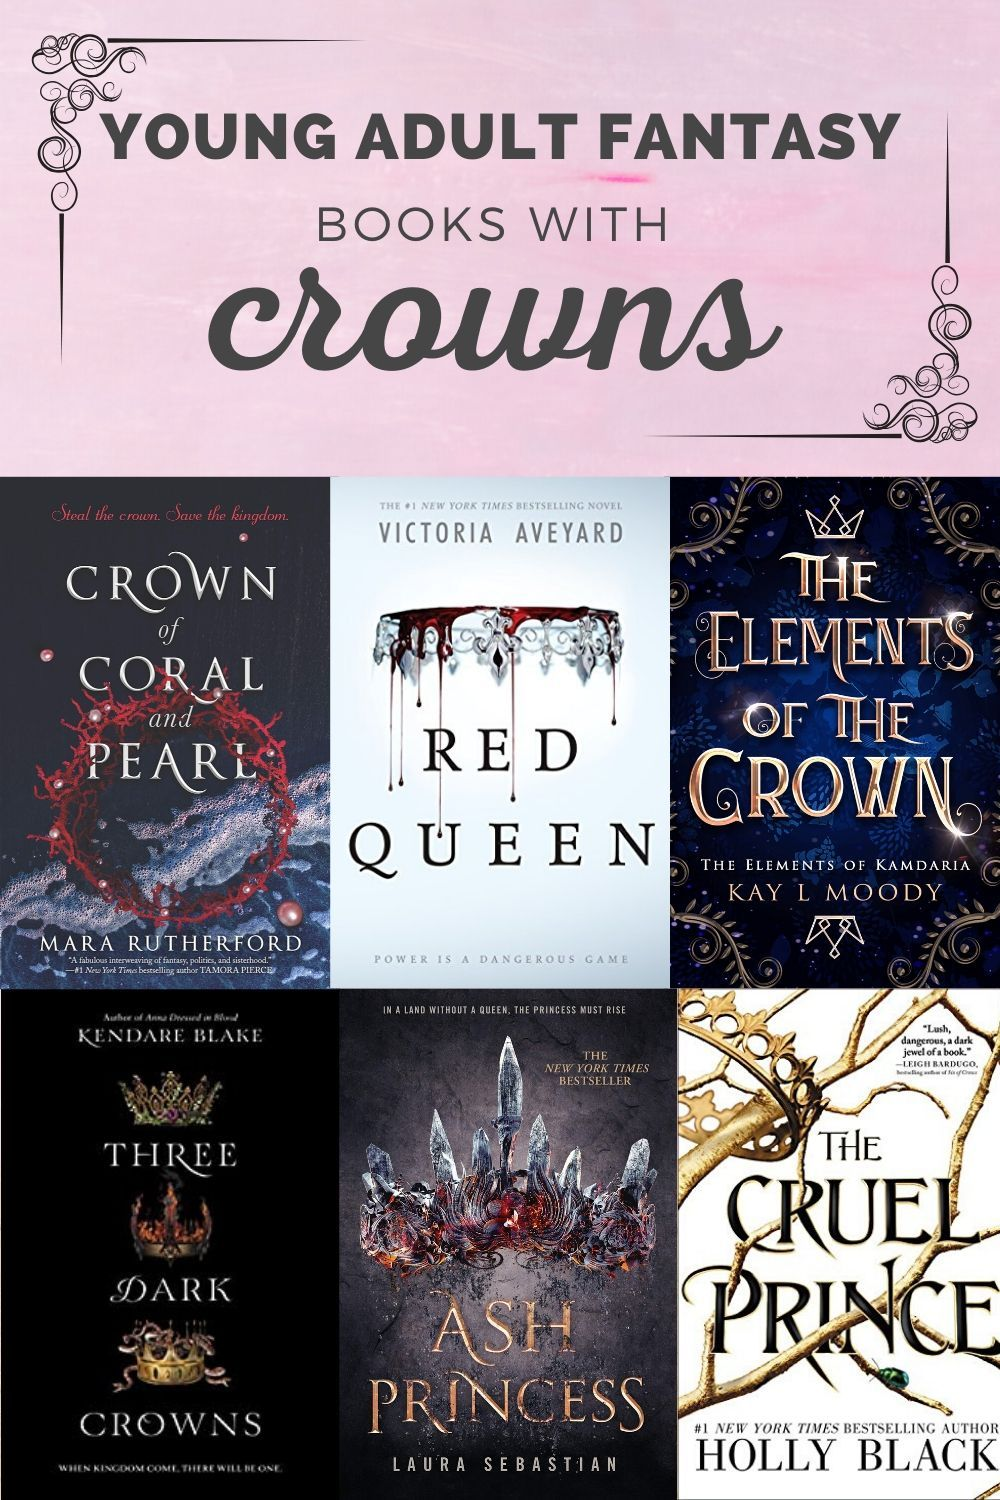 Young adult fantasy book covers are beautiful when they include a crown. Check out this list of YA fantasy books with crowns on the cover.